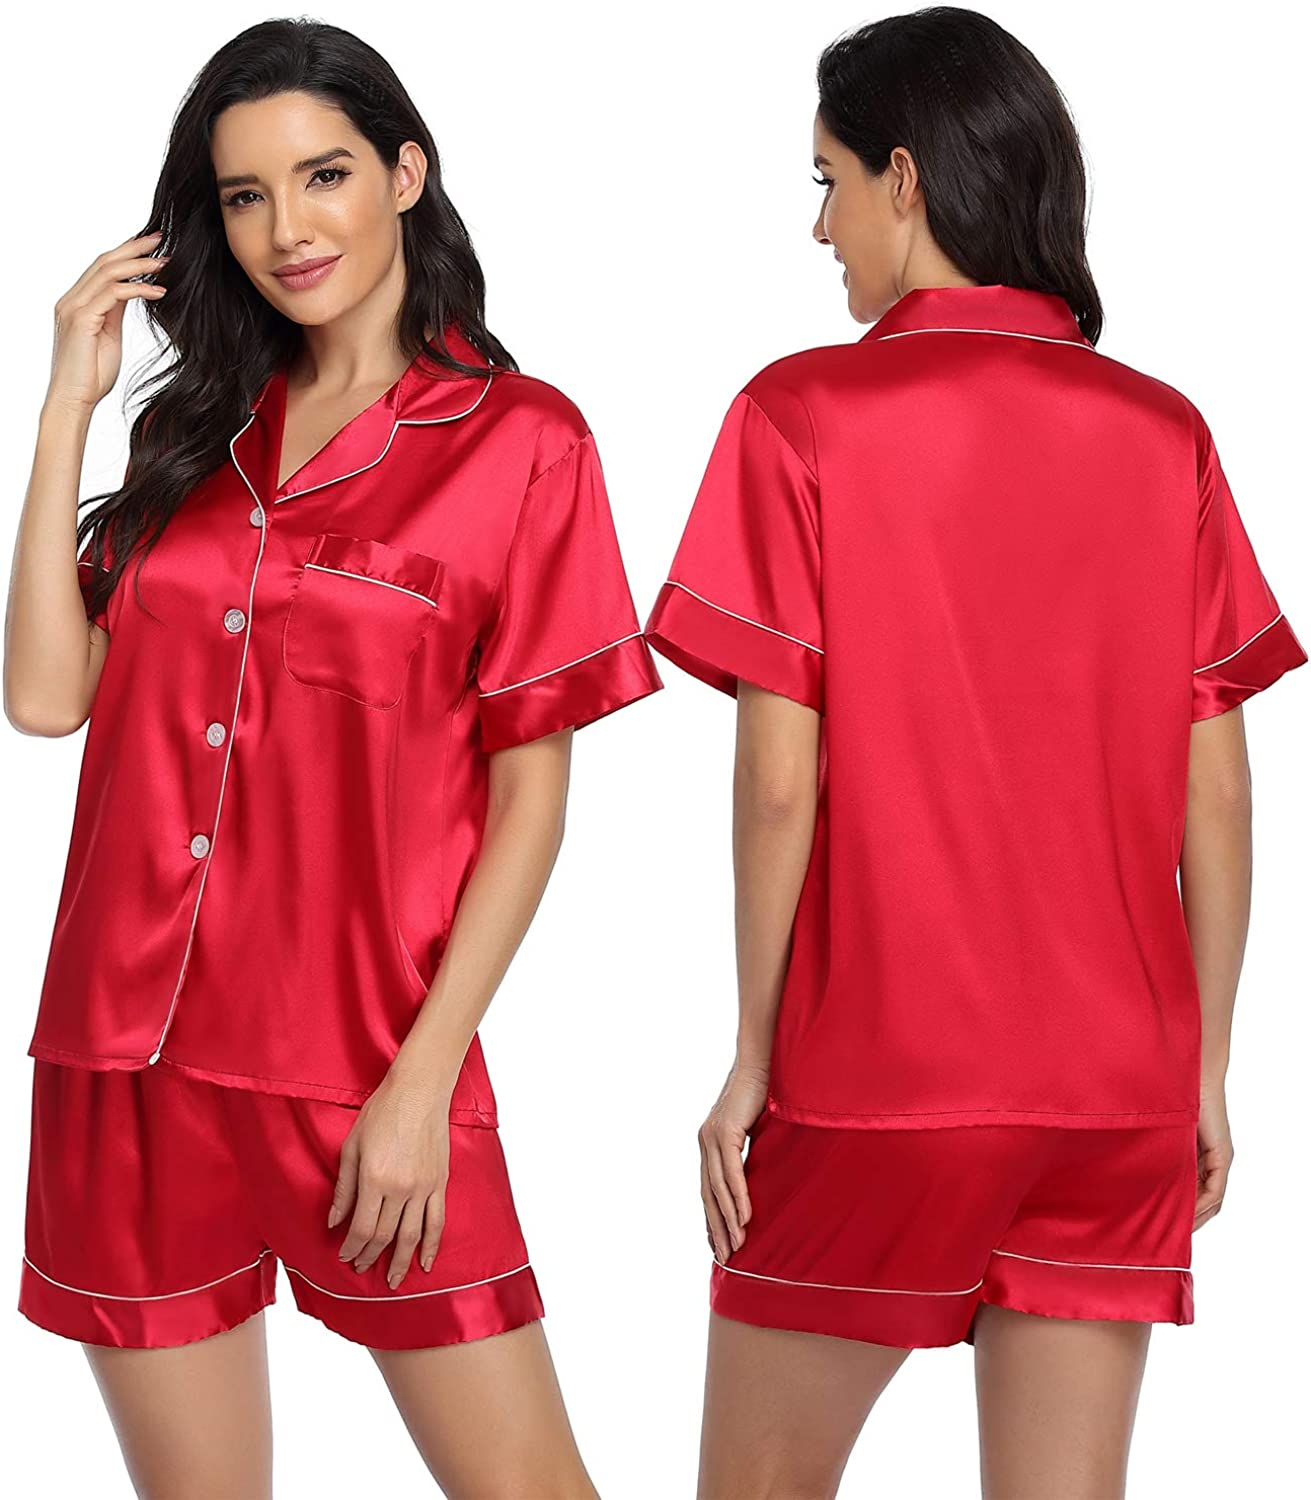 ARGCONNER Womens Silk Satin Max 47% OFF Pajamas Sleeve Set Short P Industry No. 1 Two-Piece